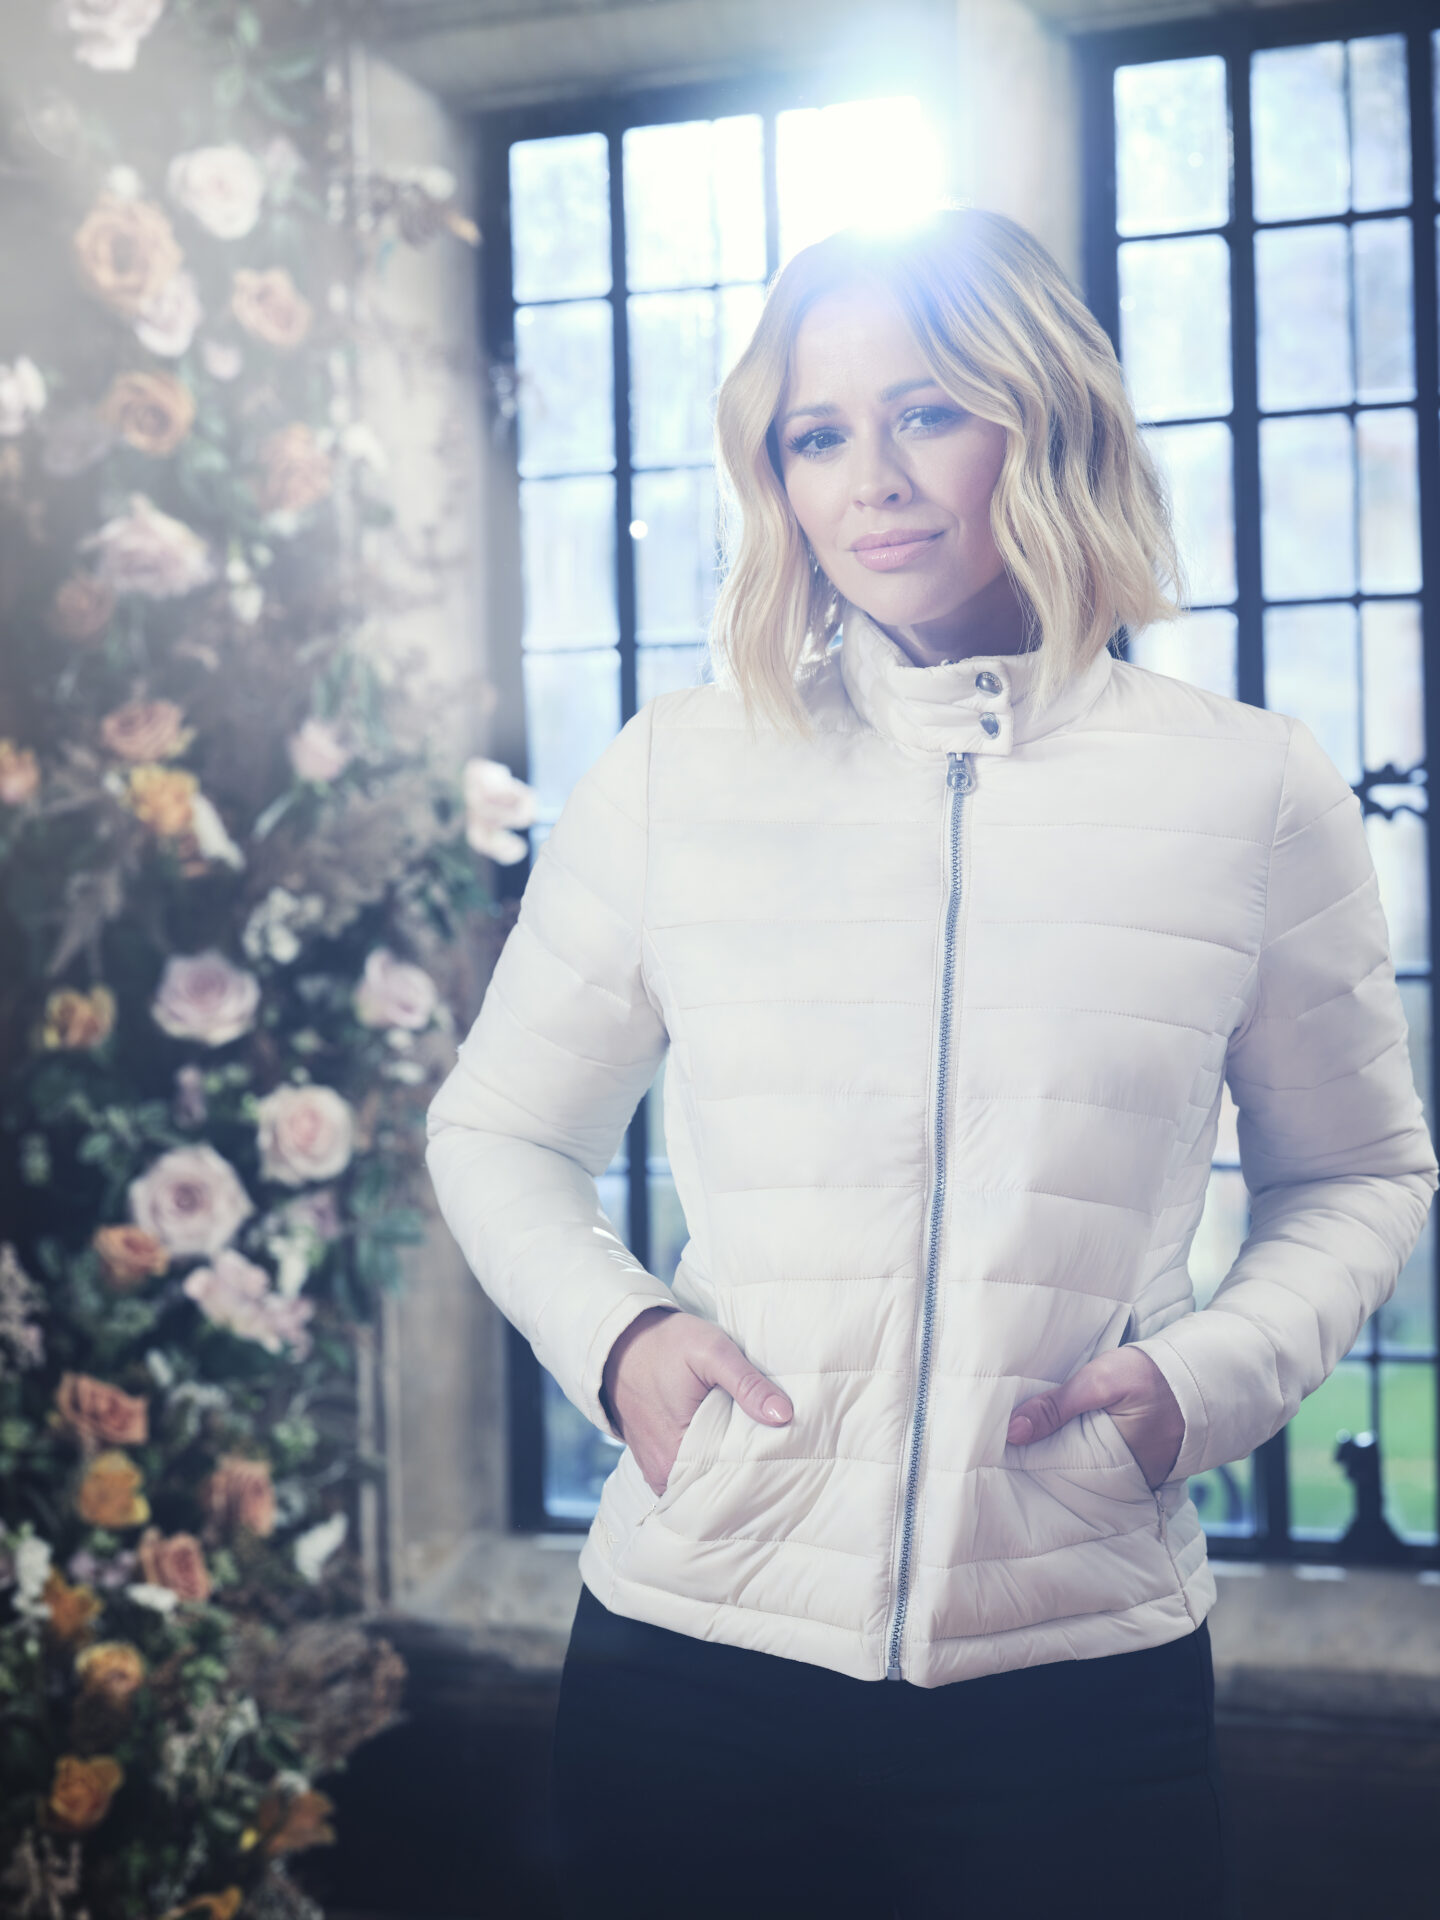 Regatta Great Outdoors Coat, Kimberley Walsh Collection, Regatta Great Outdoors, Outdoor Clothing, Women's Jacket, Coat, Fashion, Win, Christmas Giveaways, Win, the Frenchie Mummy